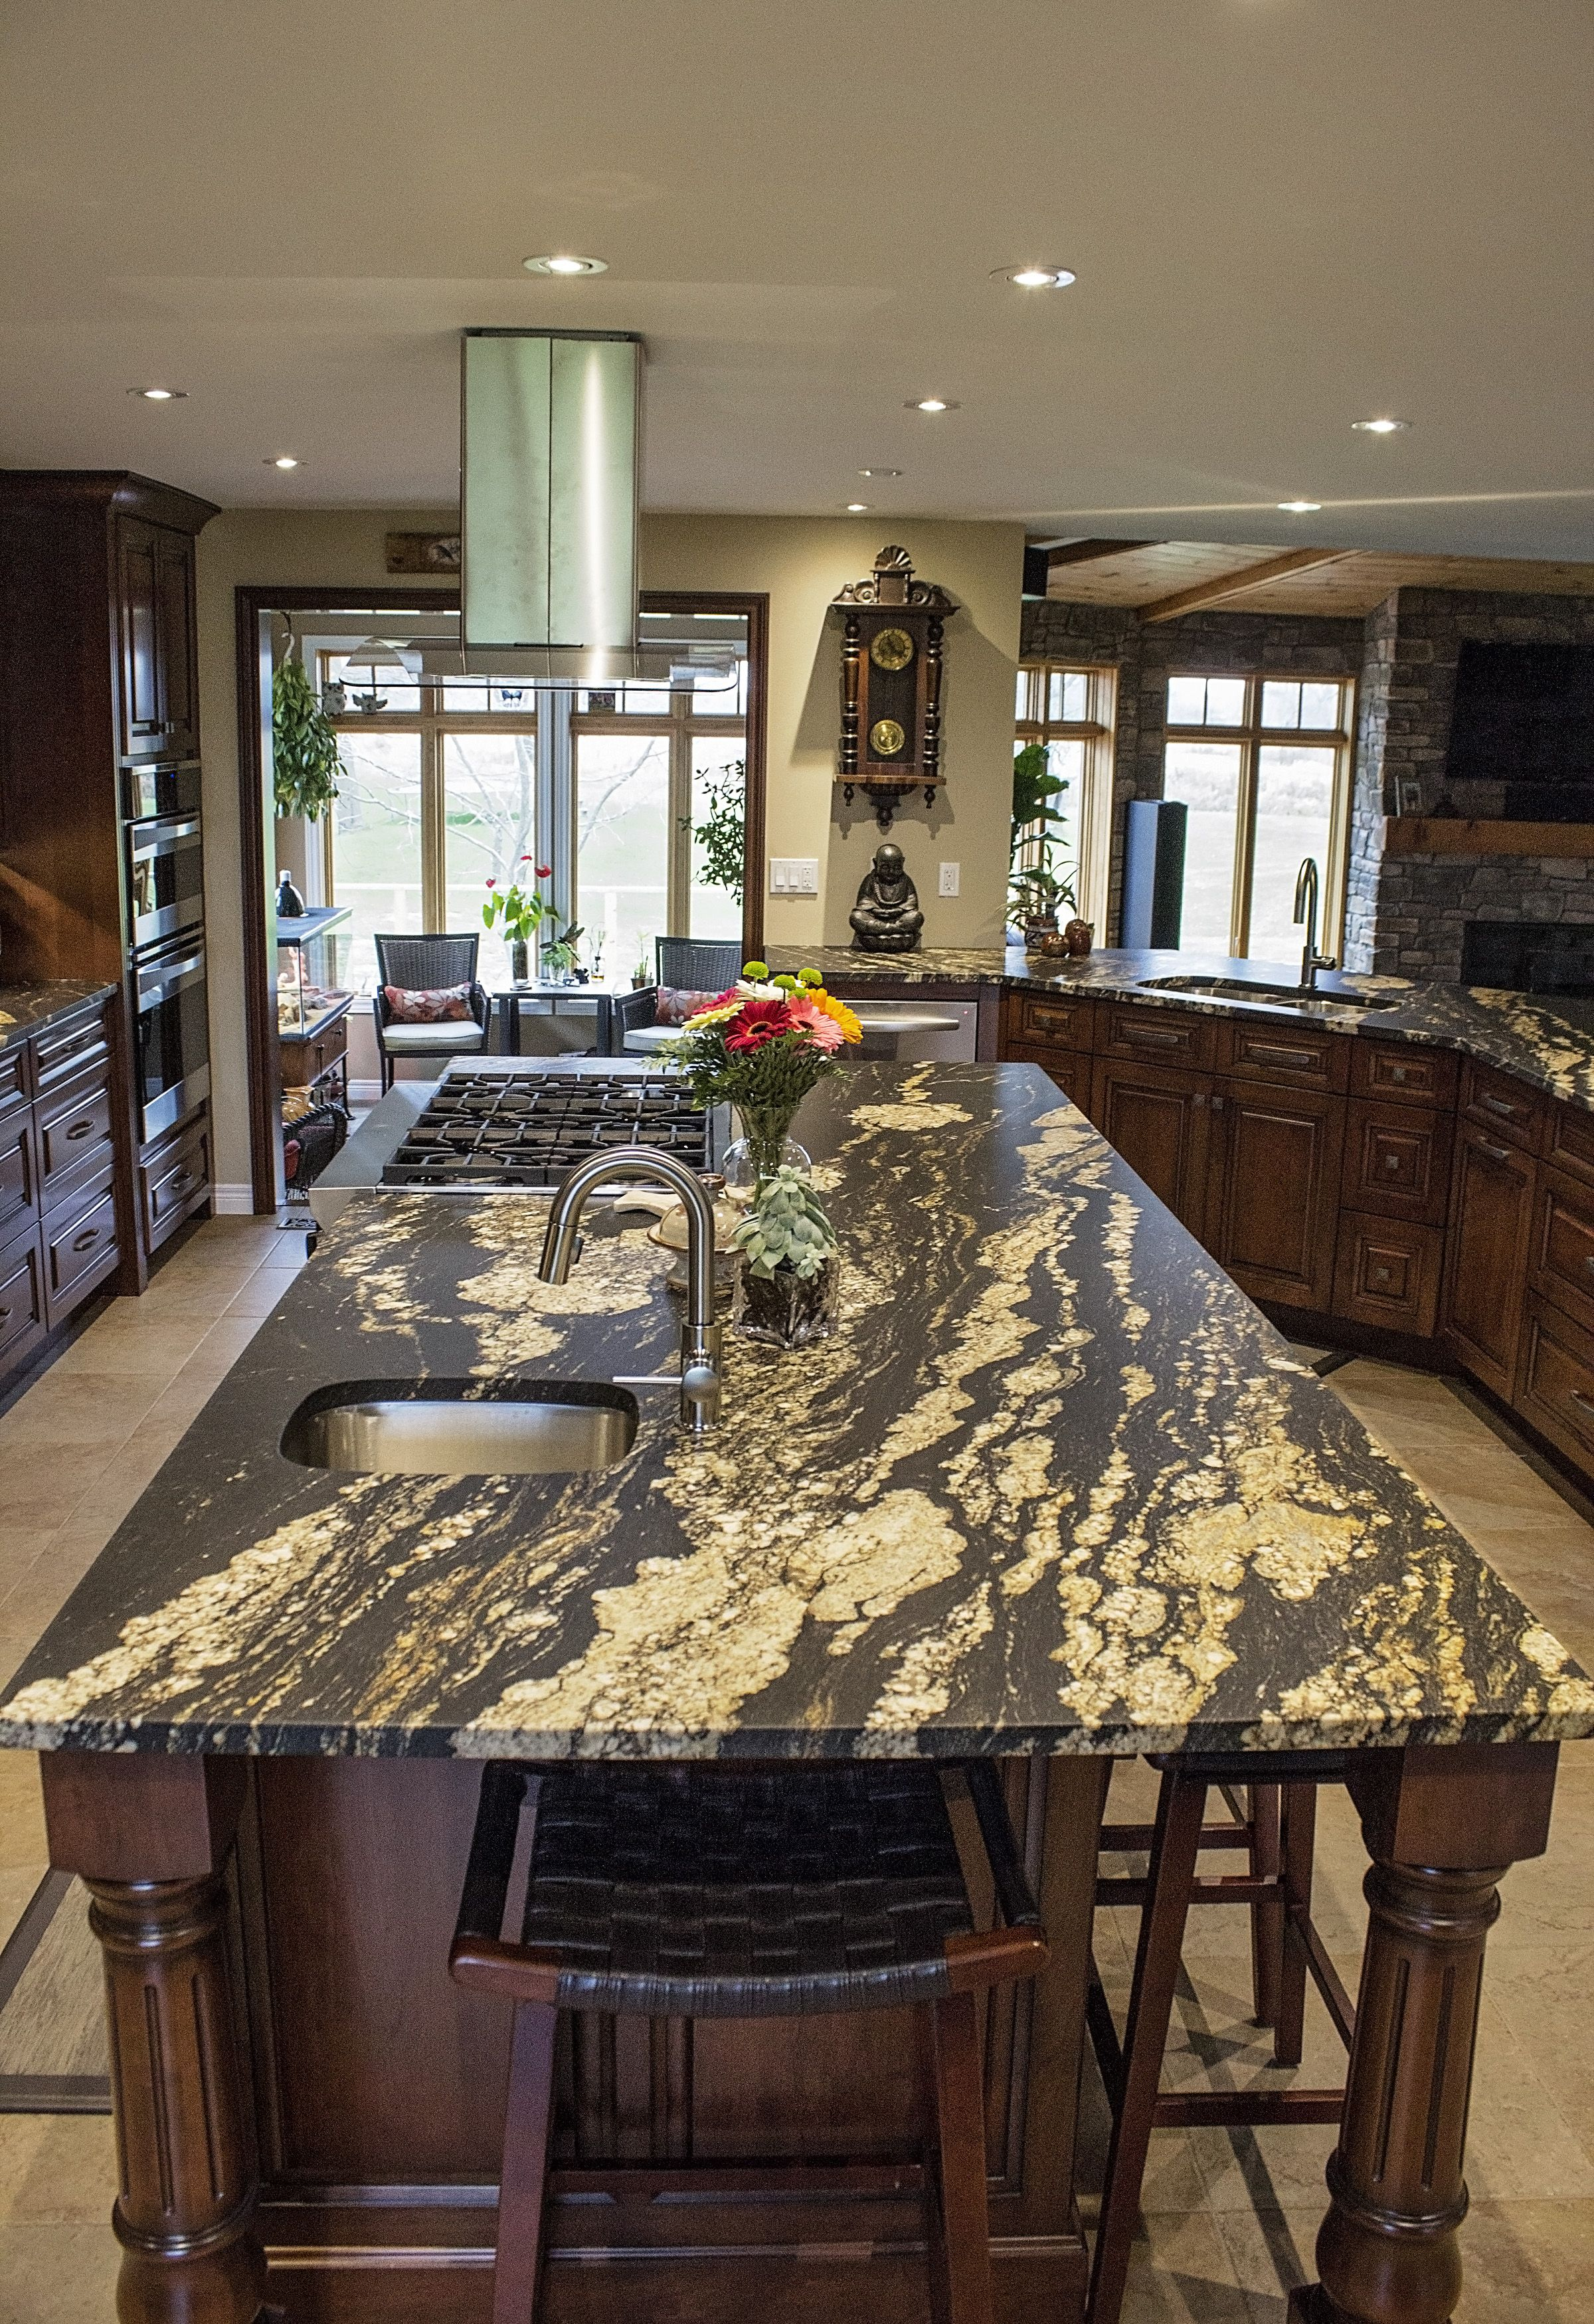 edge countertops leathered kitchen cutting gallery granite stoneworks